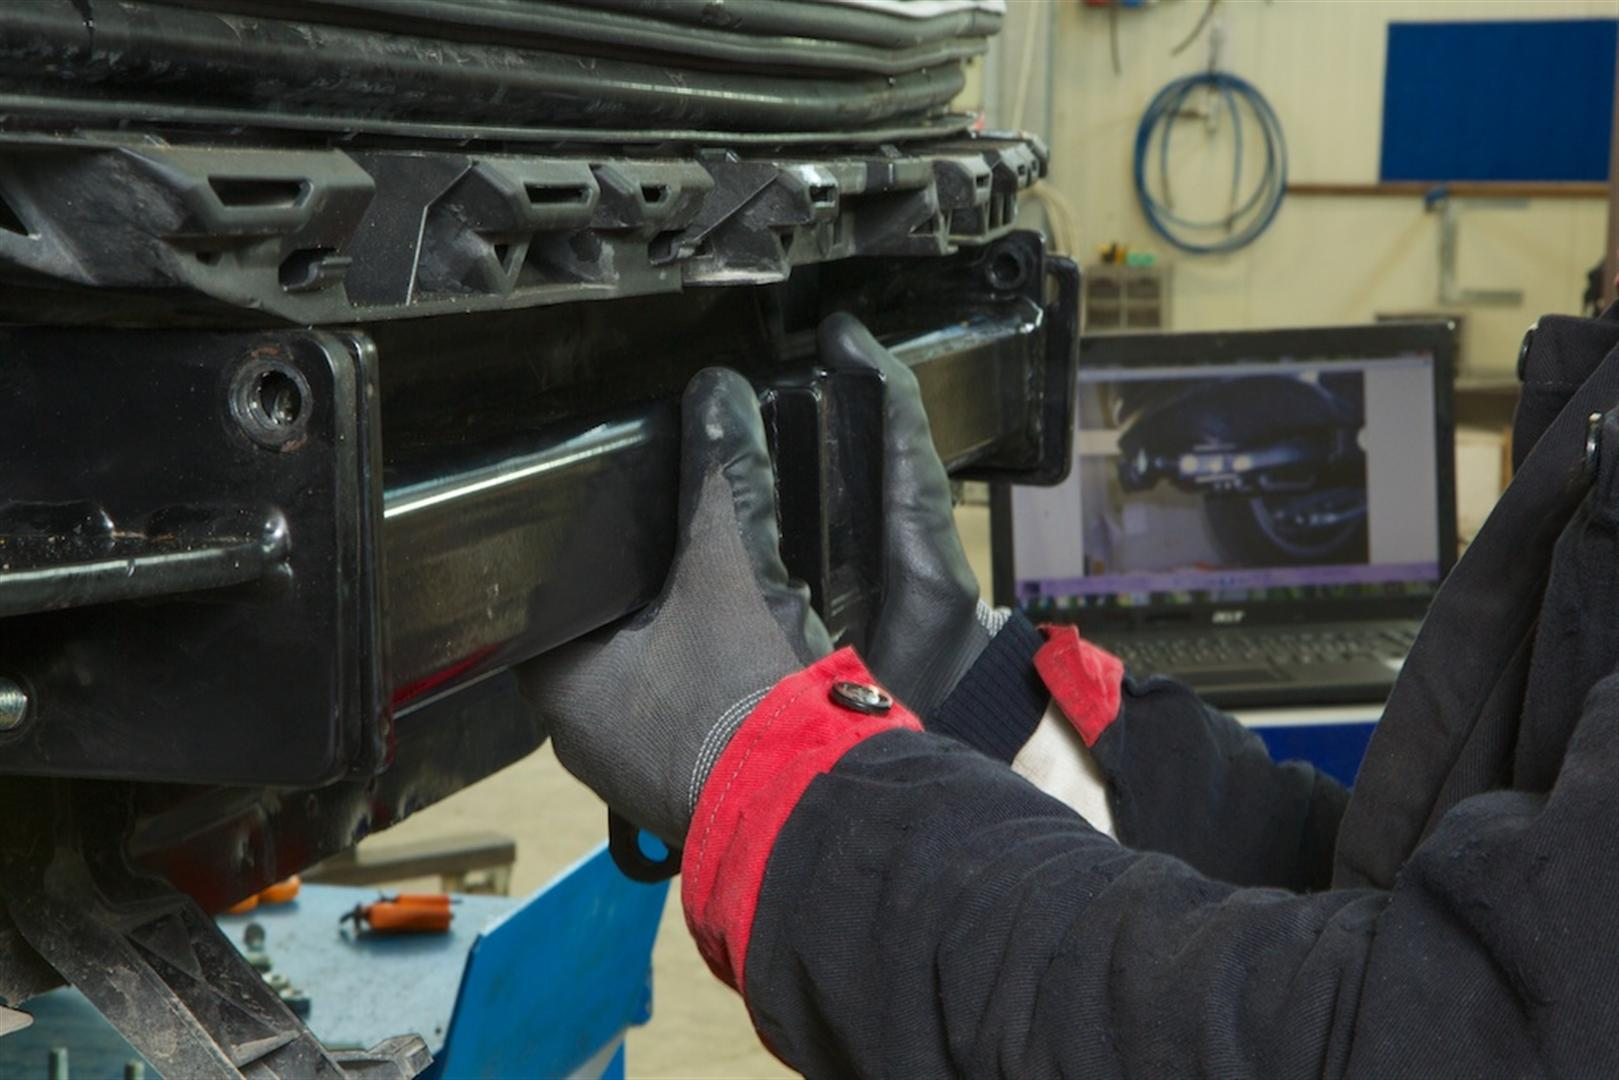 competence in fitting towbars